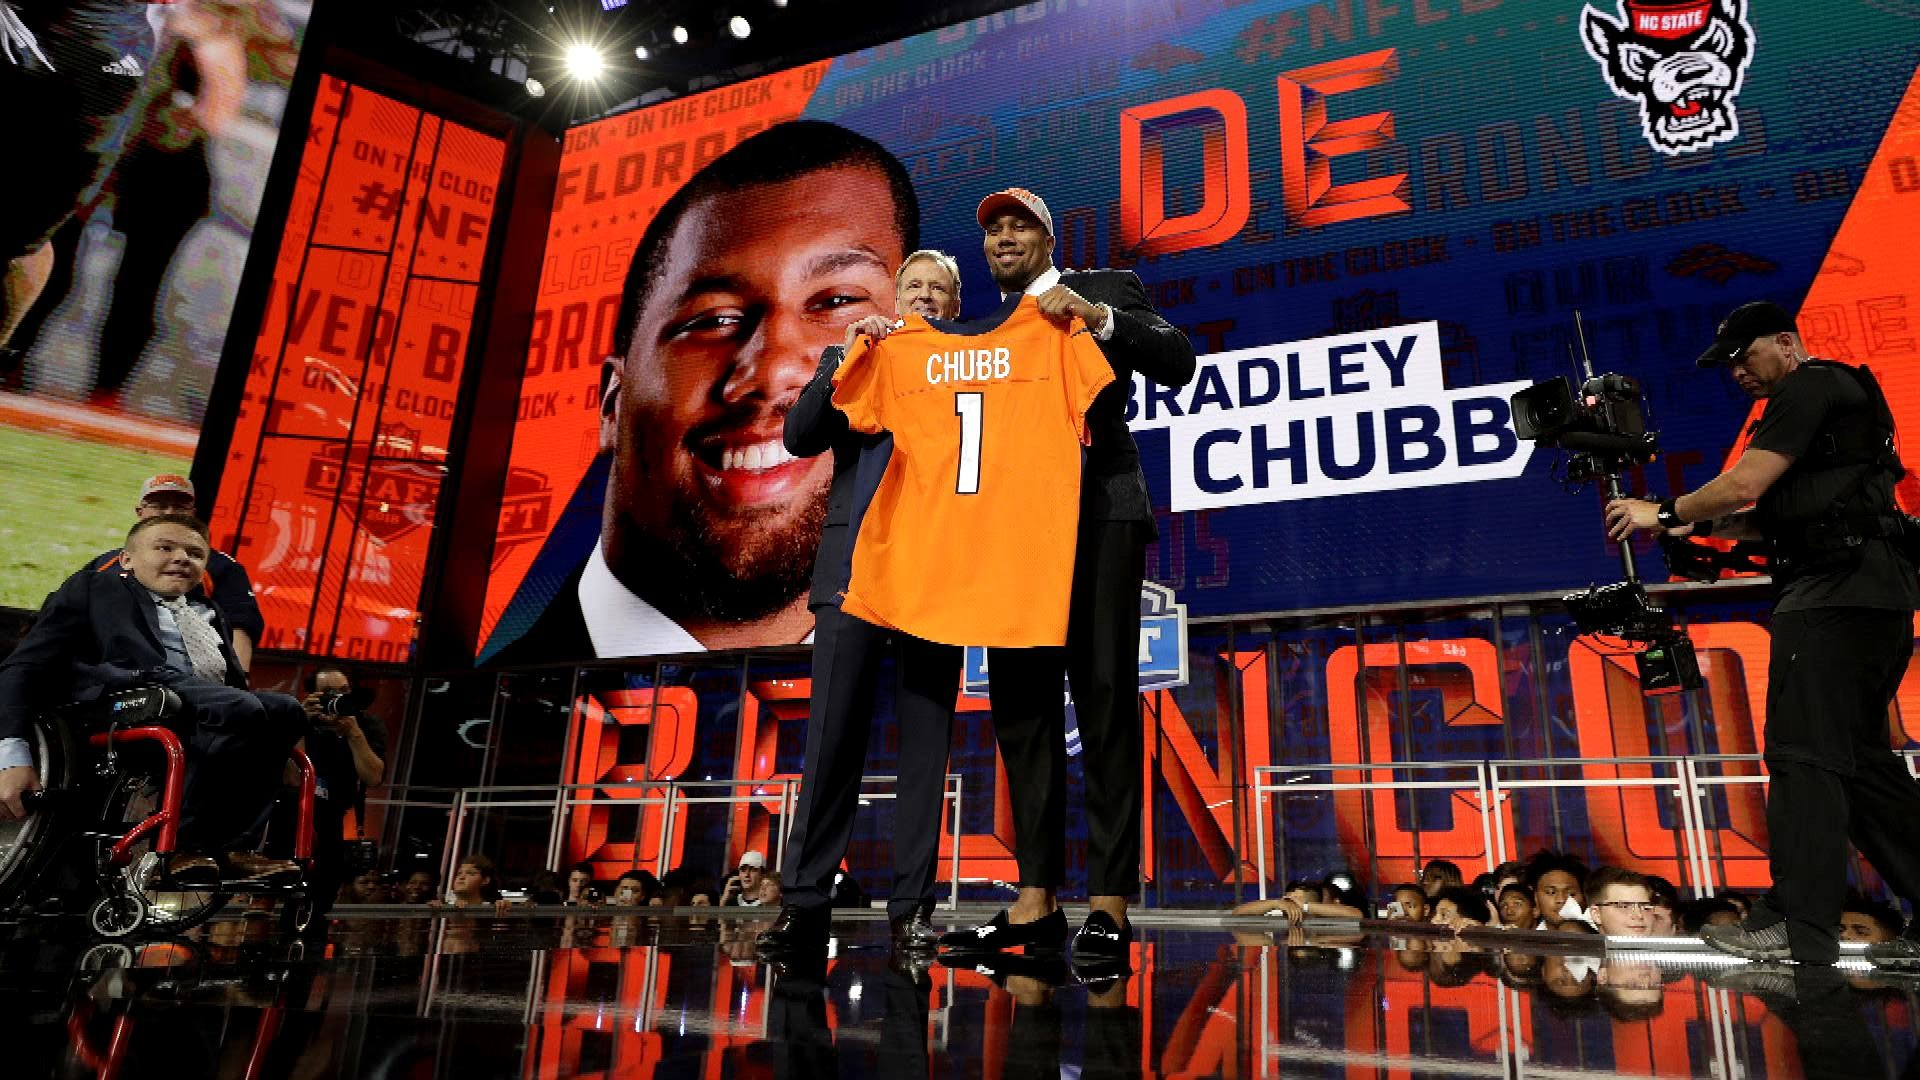 Denver Broncos Sign Top 10 Draft Pick Bradley Chubb To A Rookie Deal Goggle Snail Mx 18 Revo Red Nbc Sports